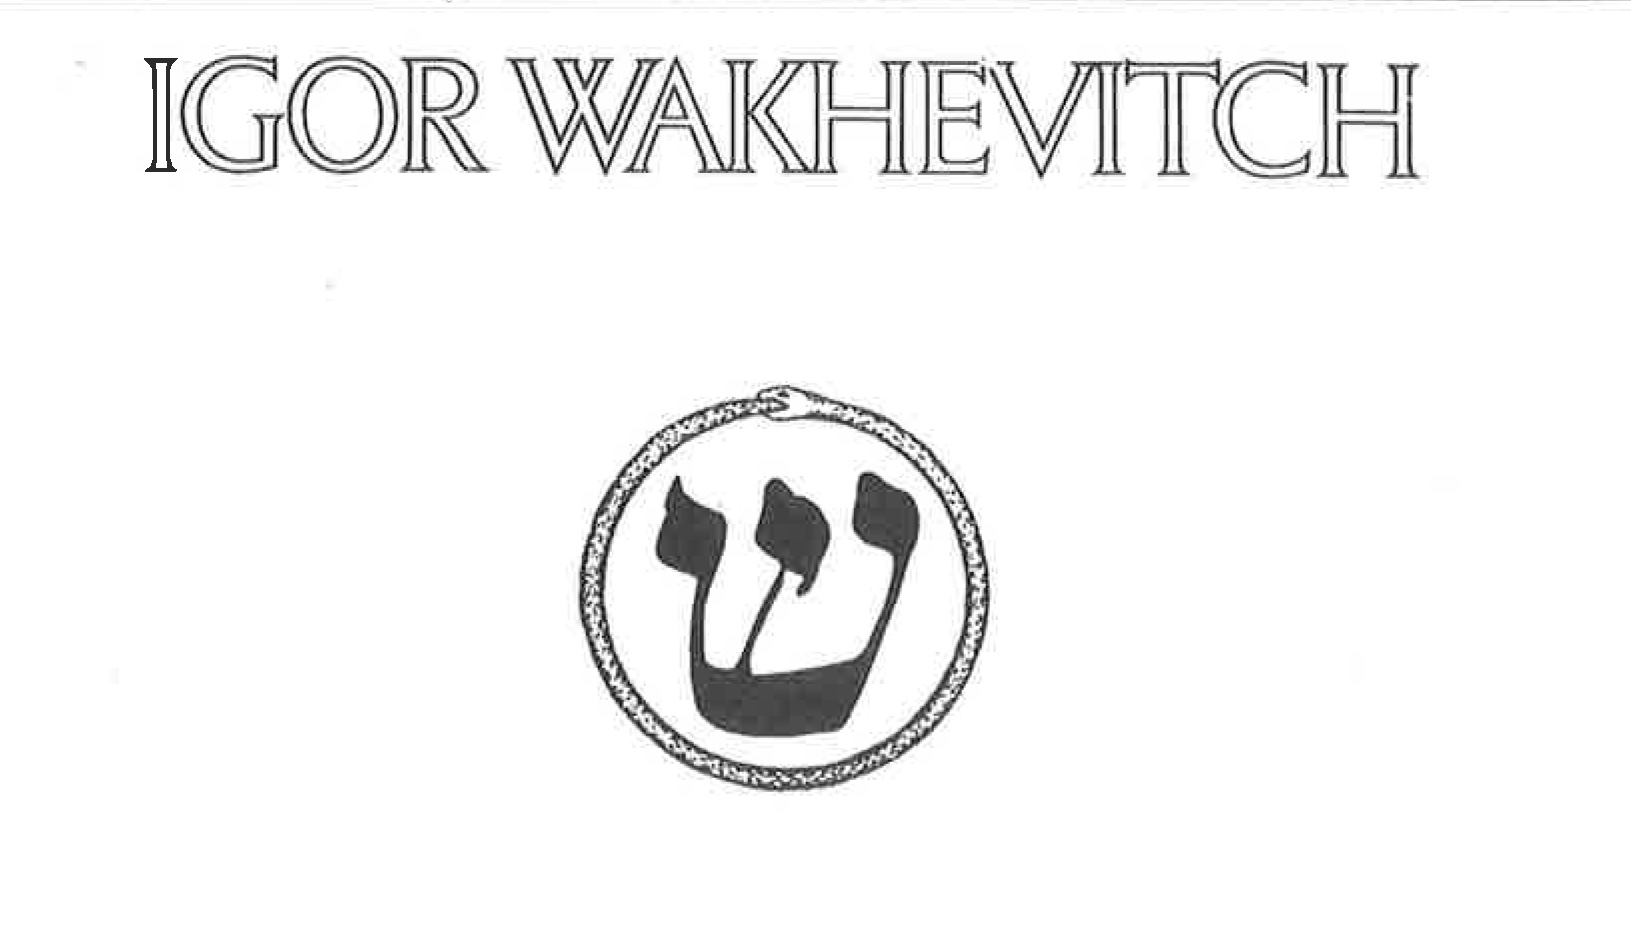 IGOR WAKHEVITCH LOGO FOR HATHOR.jpeg